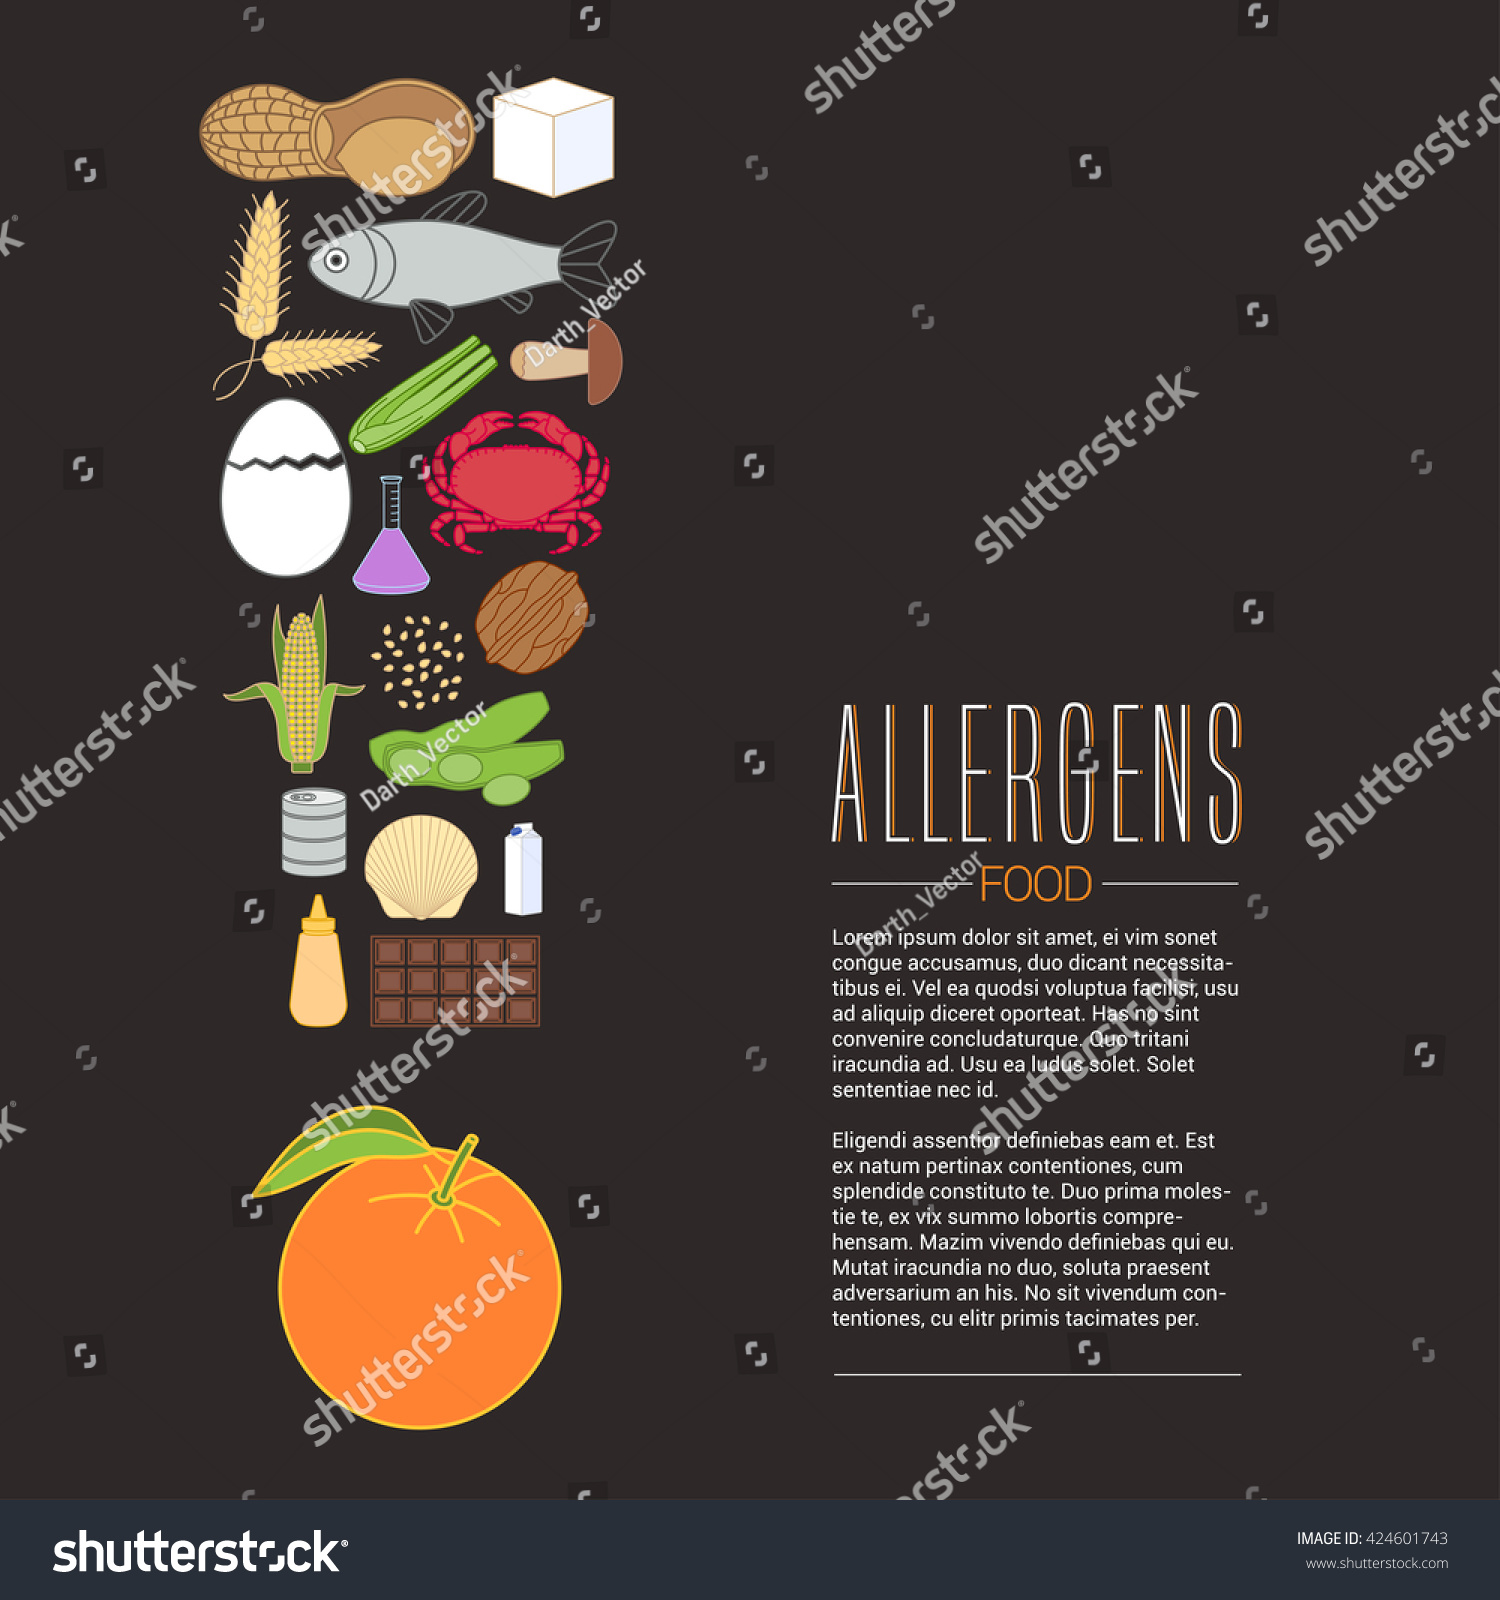 Poster design article - Vector Design Element For Article About Food Allergens Banner For Allergies Poster Design For